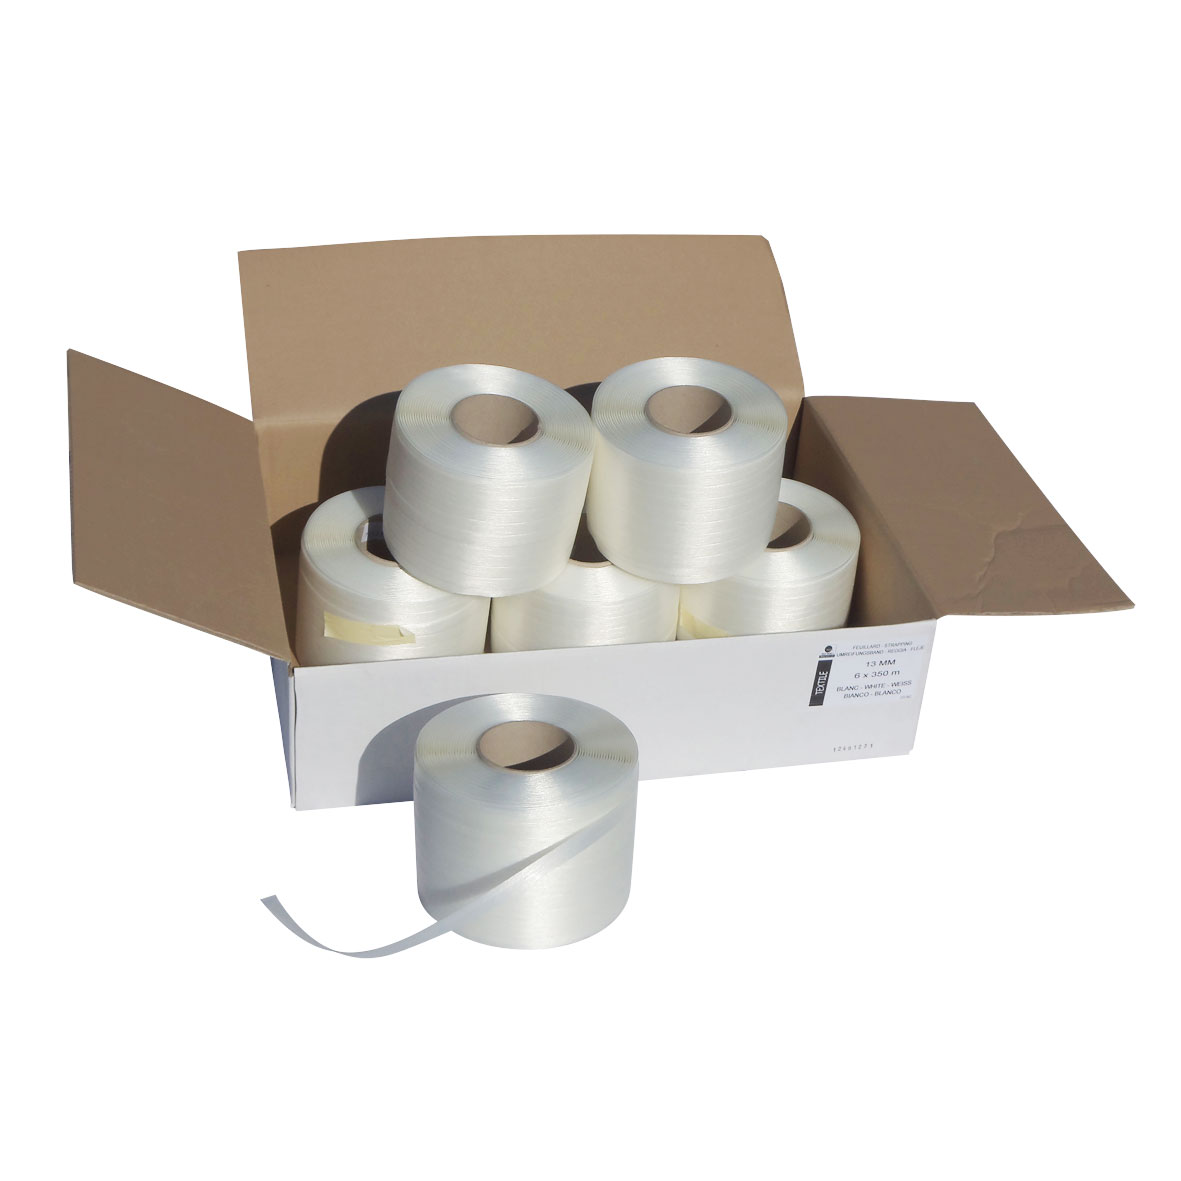 16mm wide baler banding - box contains 6 x 350 metre long rolls in white